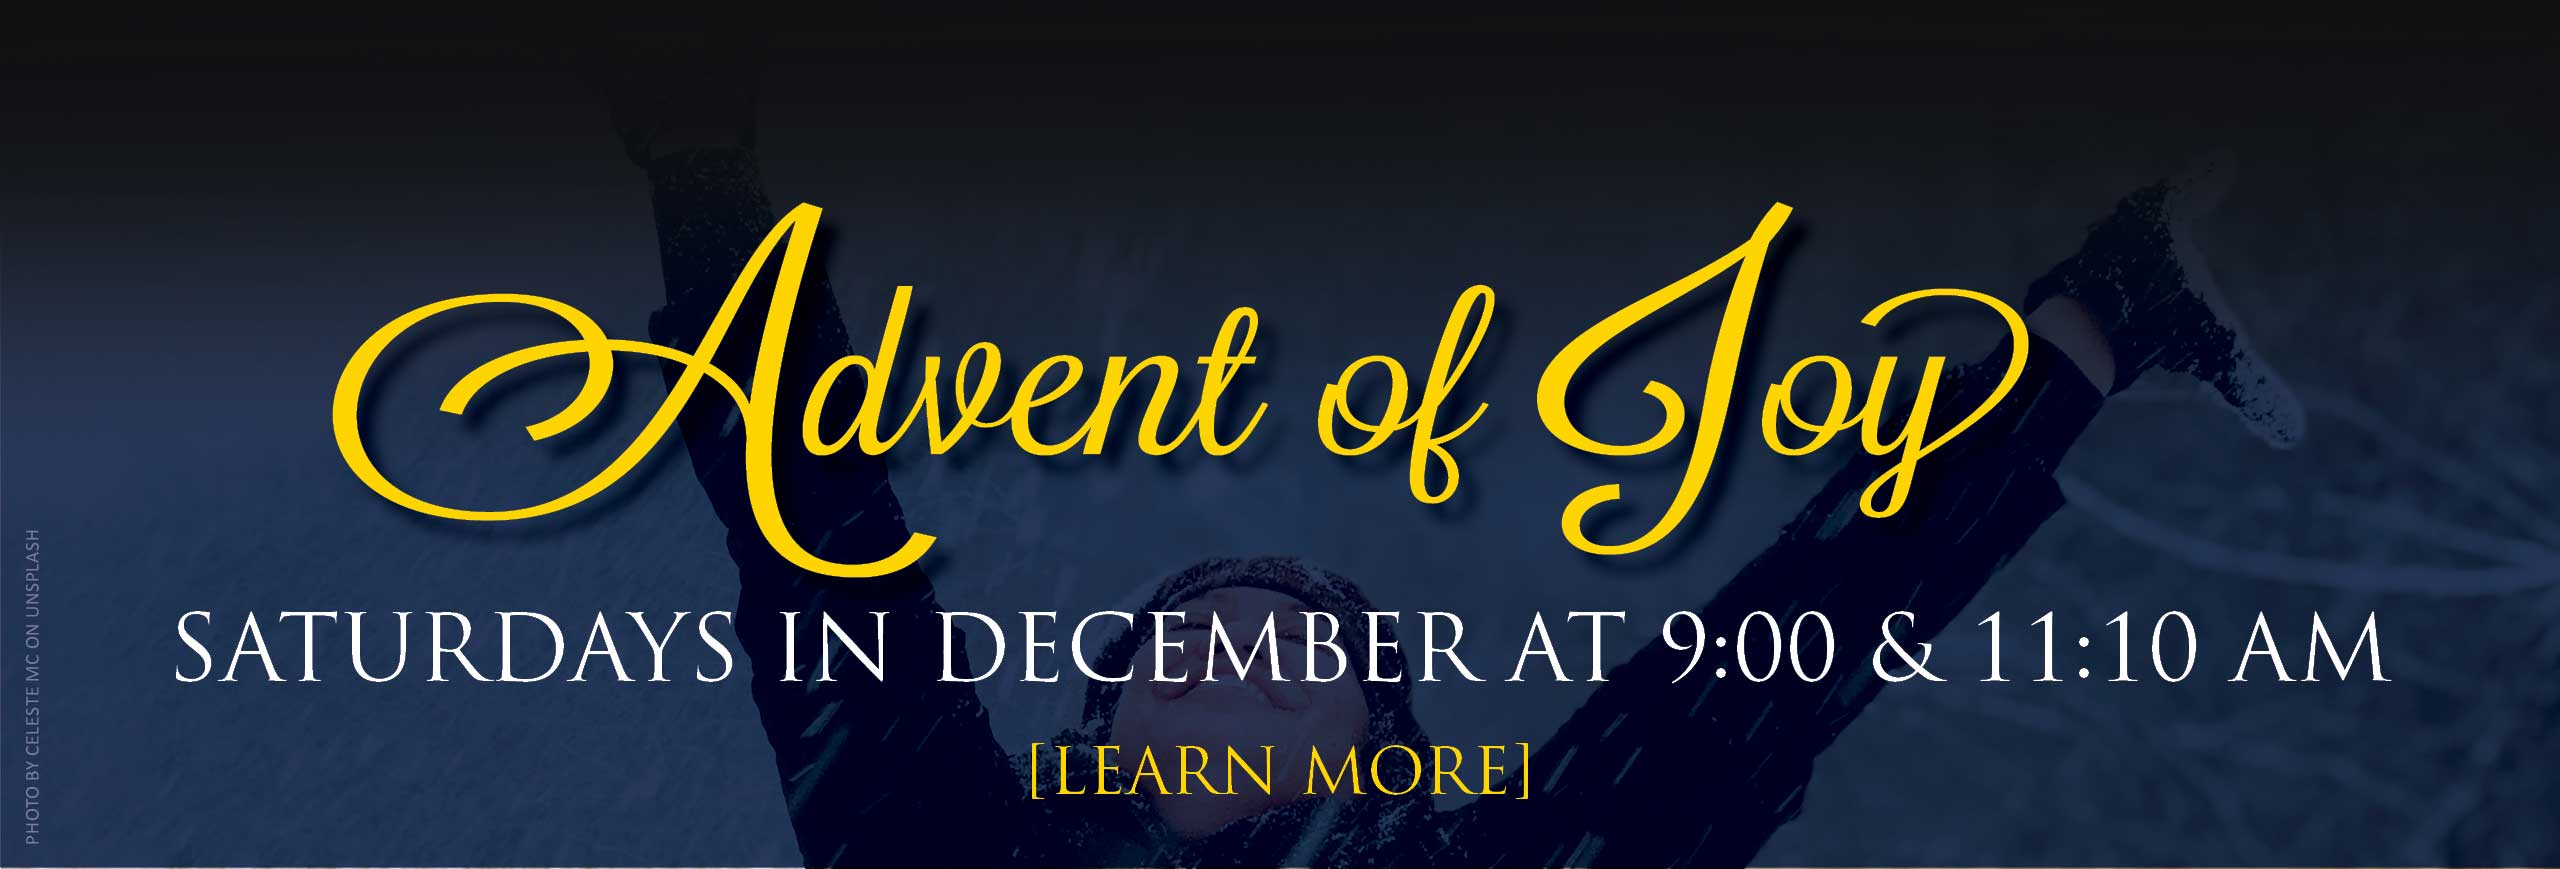 Advent of Joy - Rediscover the Joy of Christmas